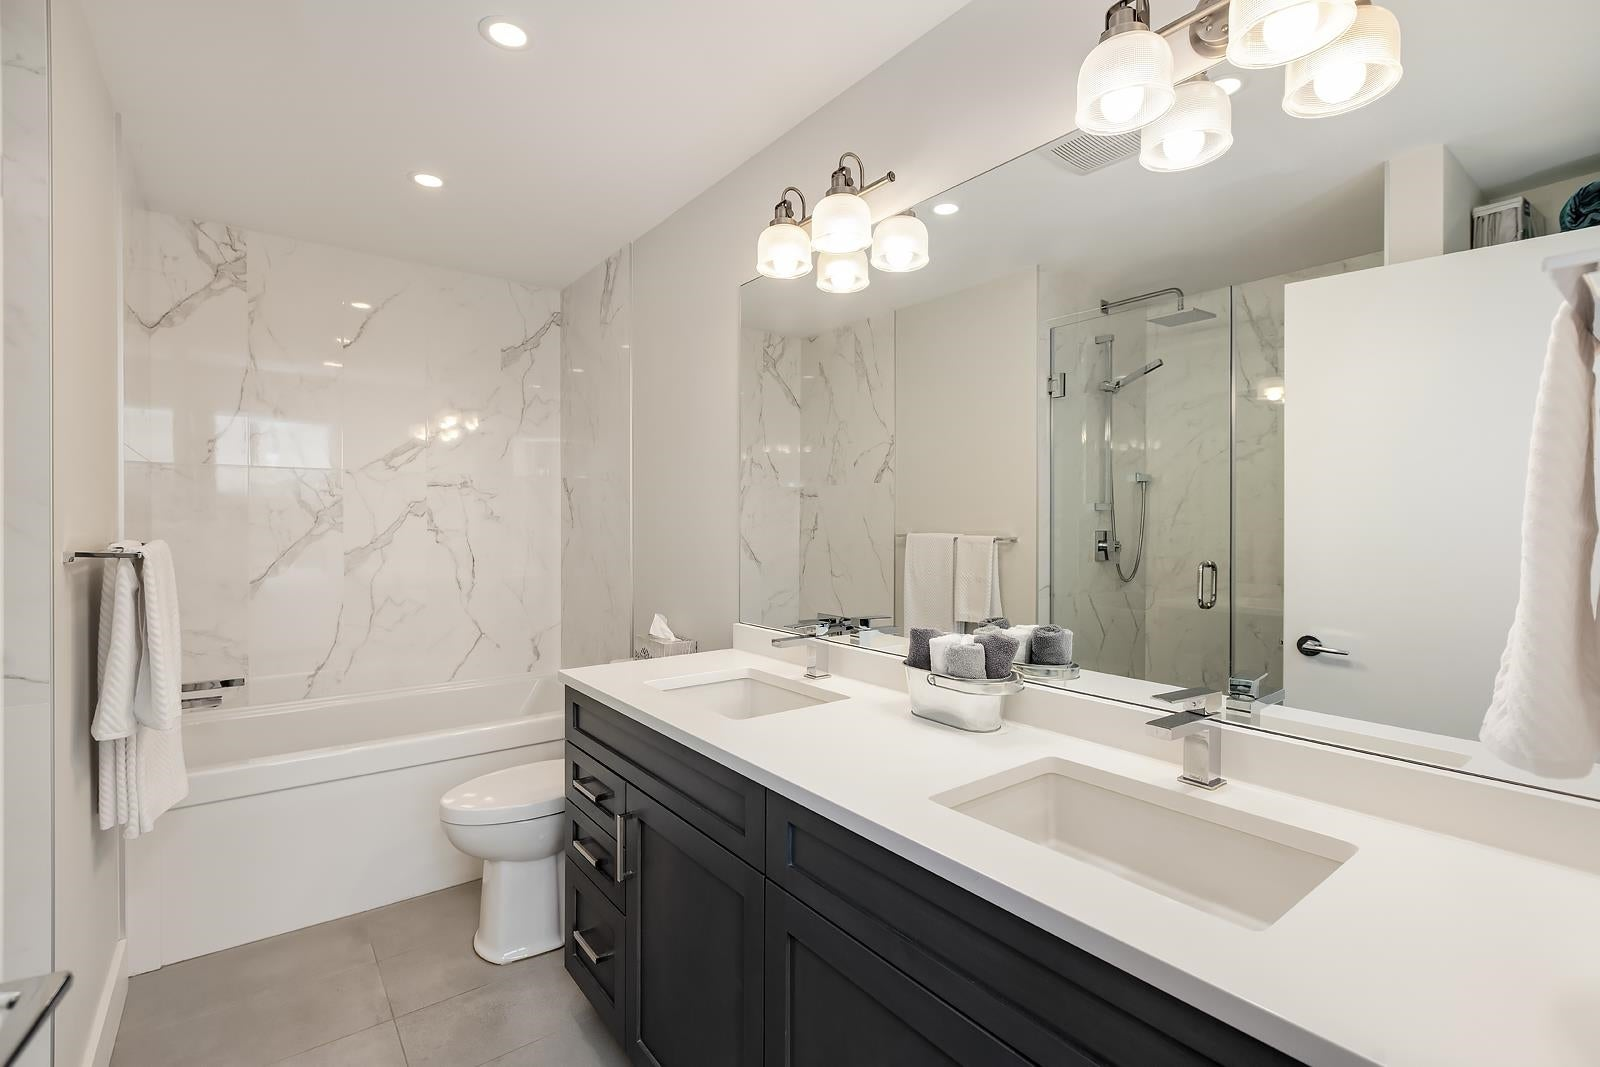 1601 121 W 16TH STREET - Central Lonsdale Apartment/Condo for sale, 2 Bedrooms (R2617103) - #24